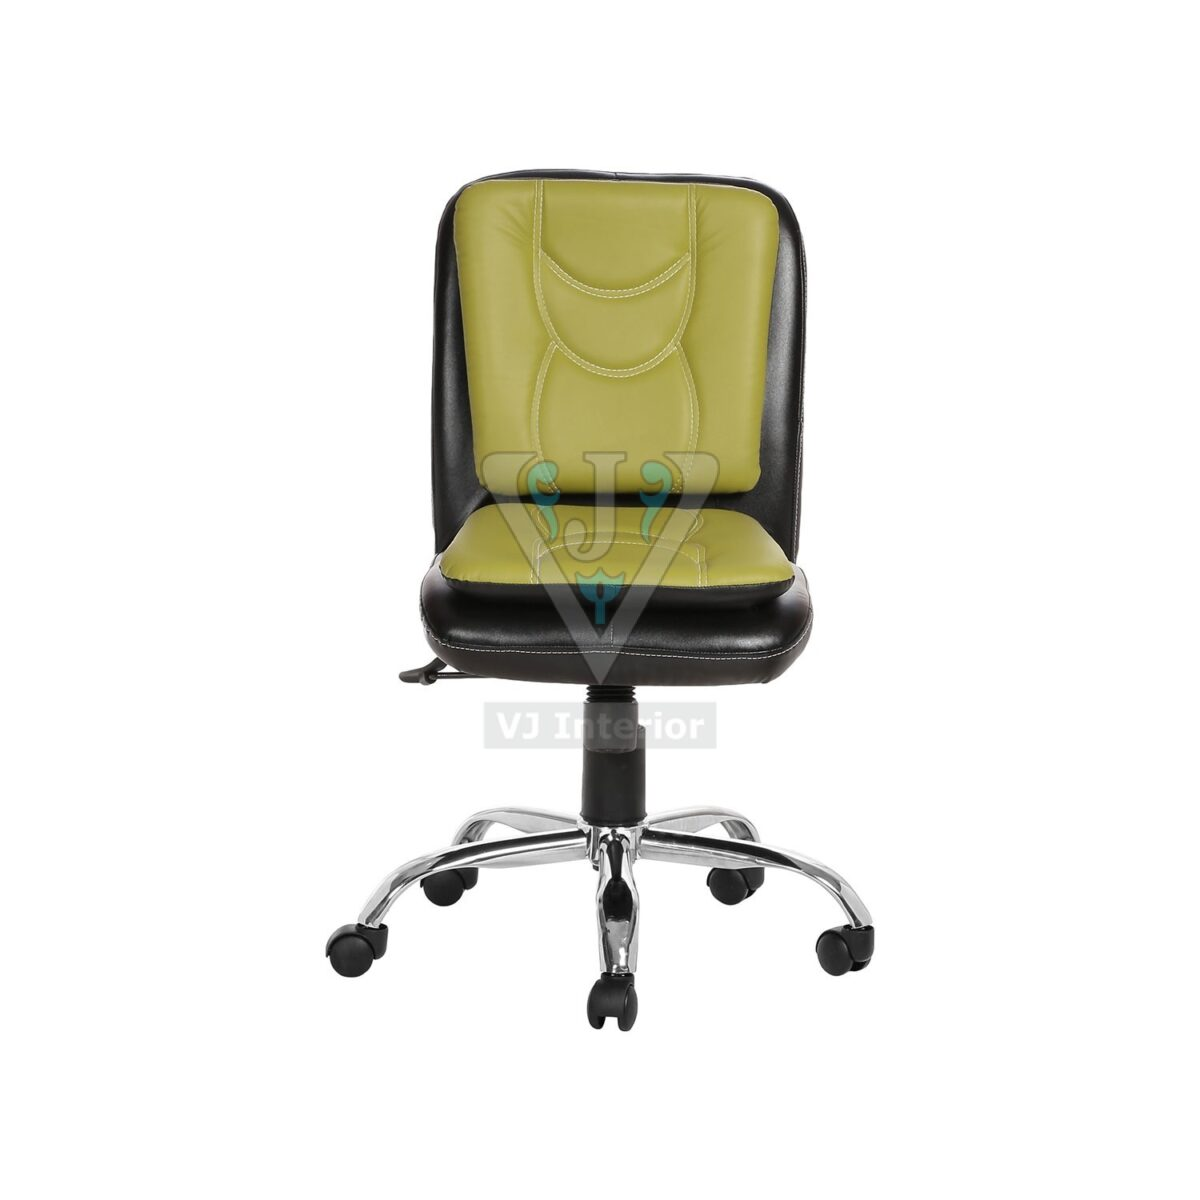 THE LIBRANEJAR LB WORKSTAION CHAIR BLACK AND CAMO